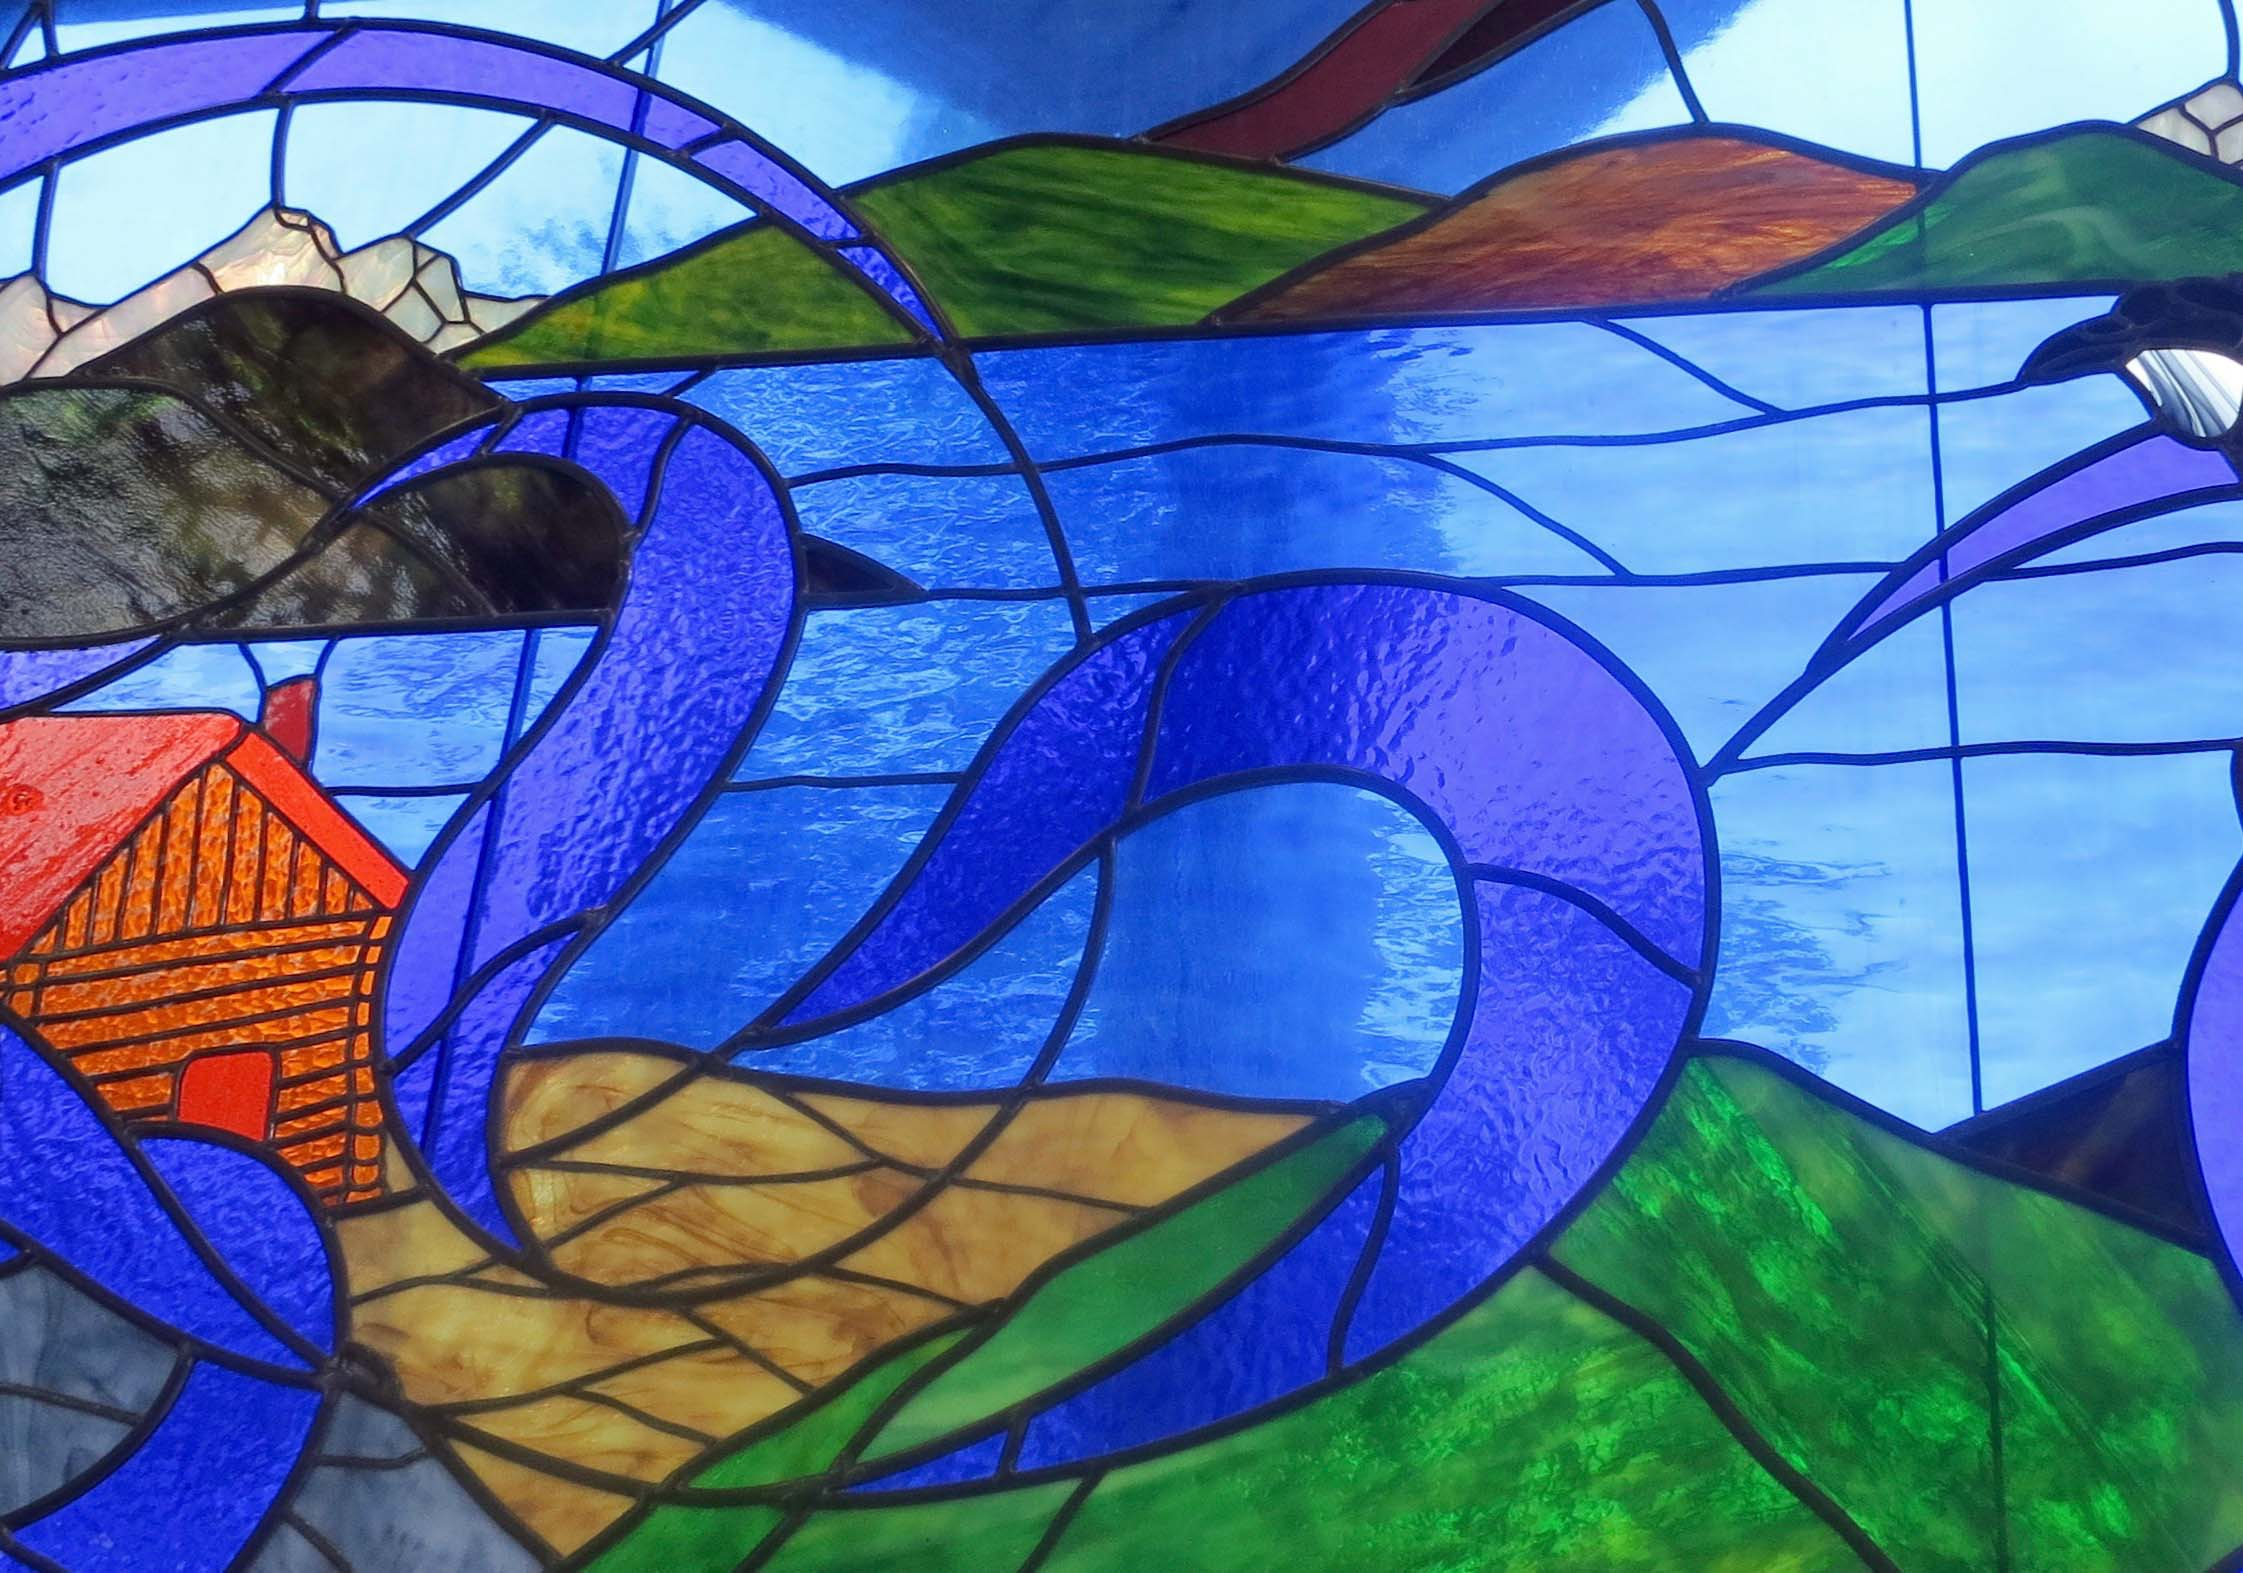 Stained glass, Whitehorse, YT